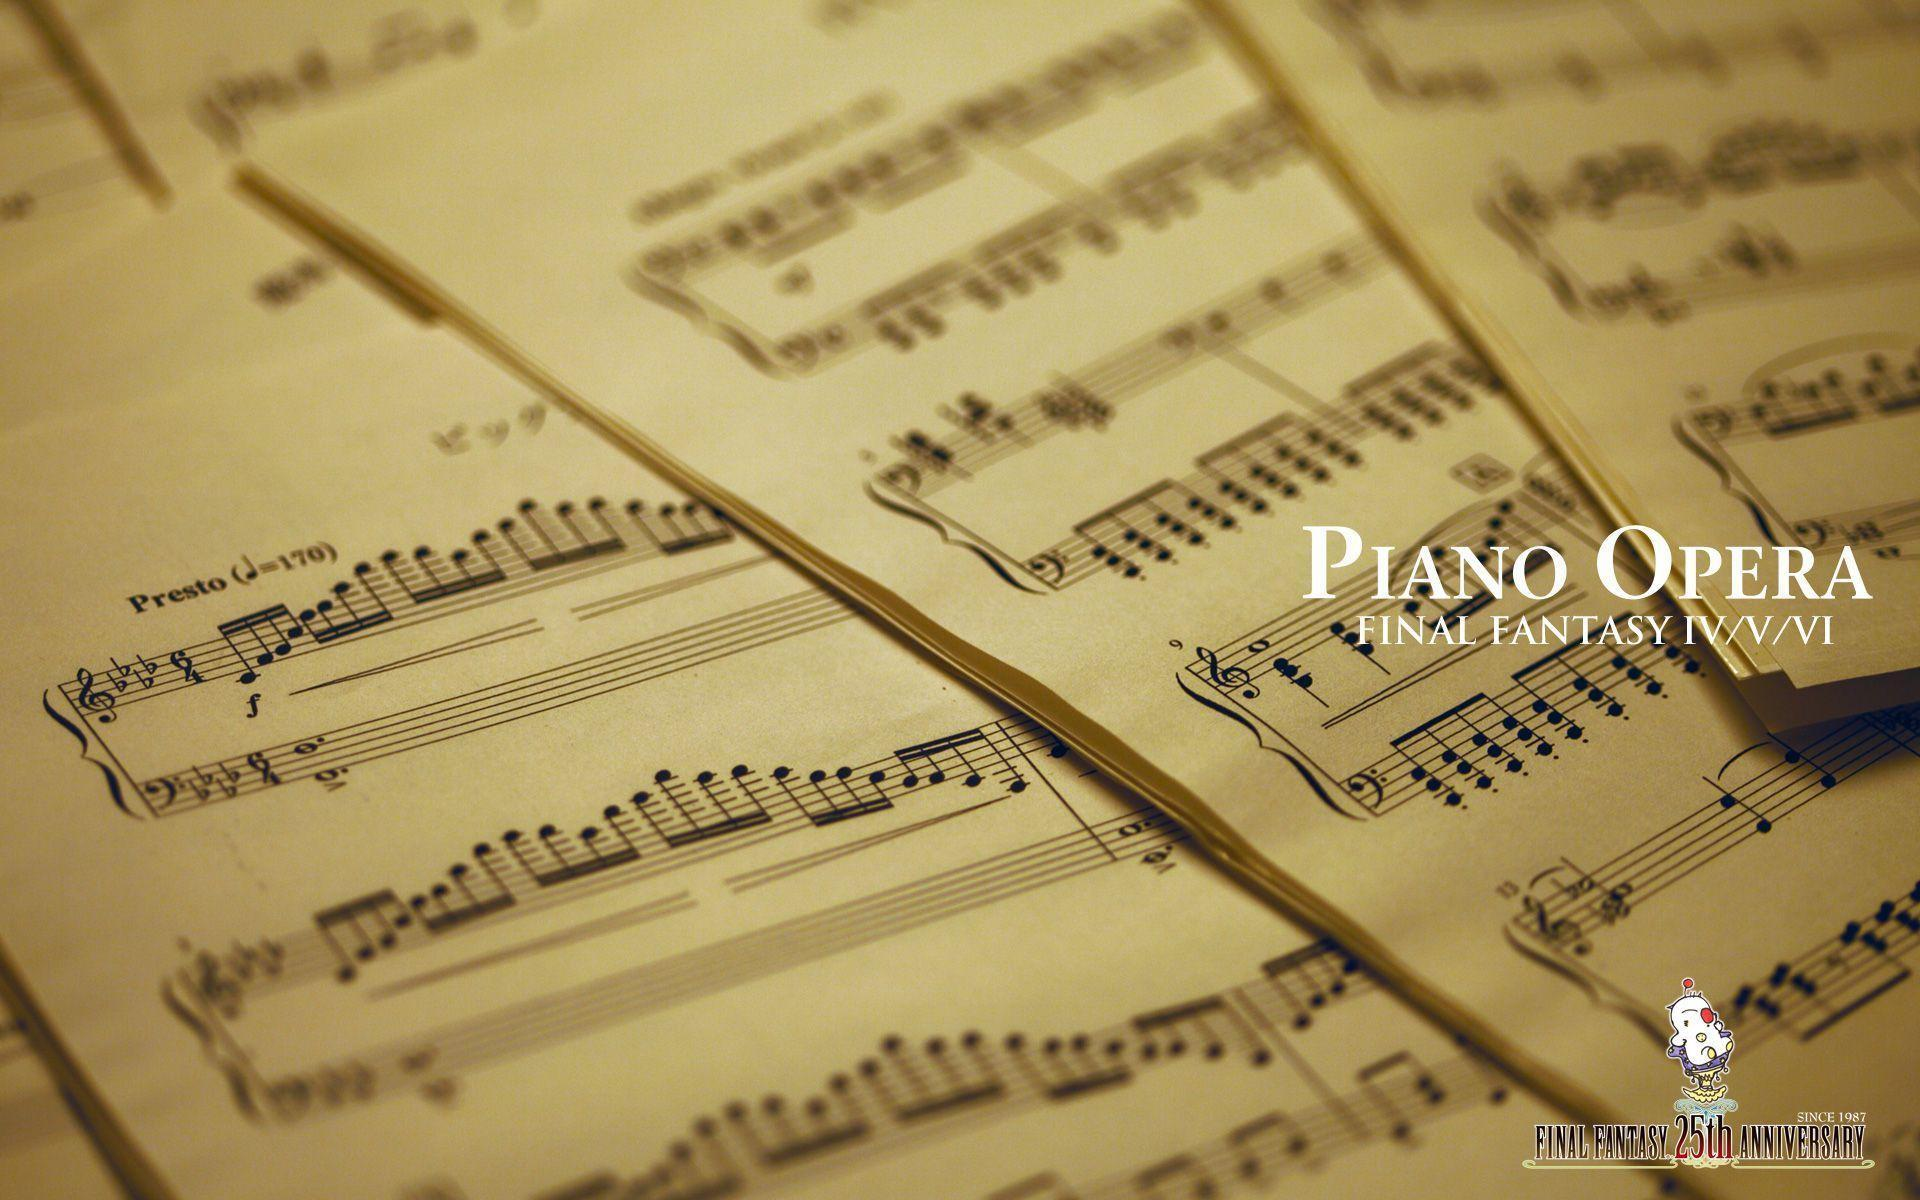 Piano Music Wallpapers - Wallpaper Cave